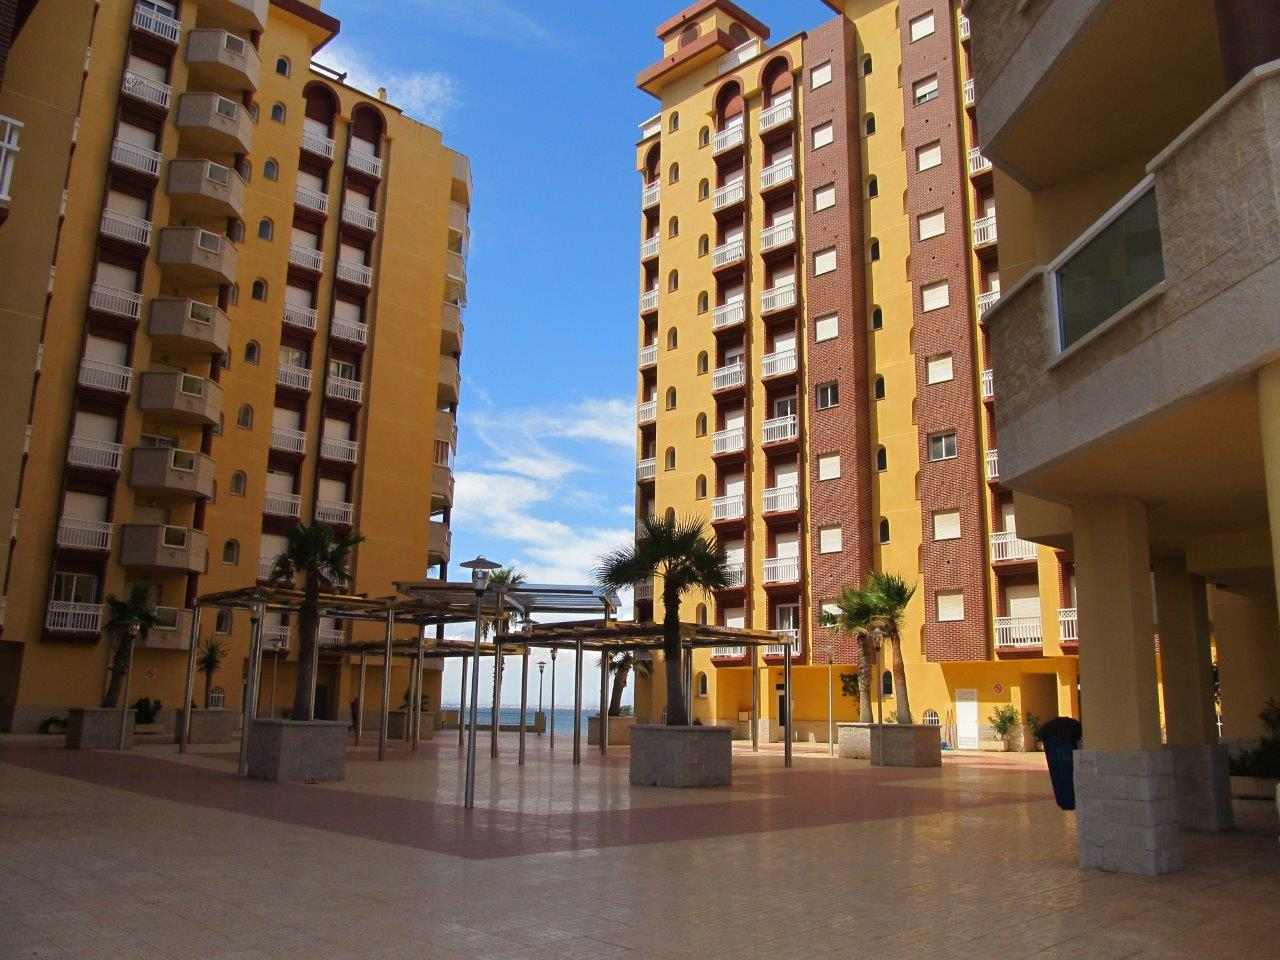 Frontline apartments in Playa Principe